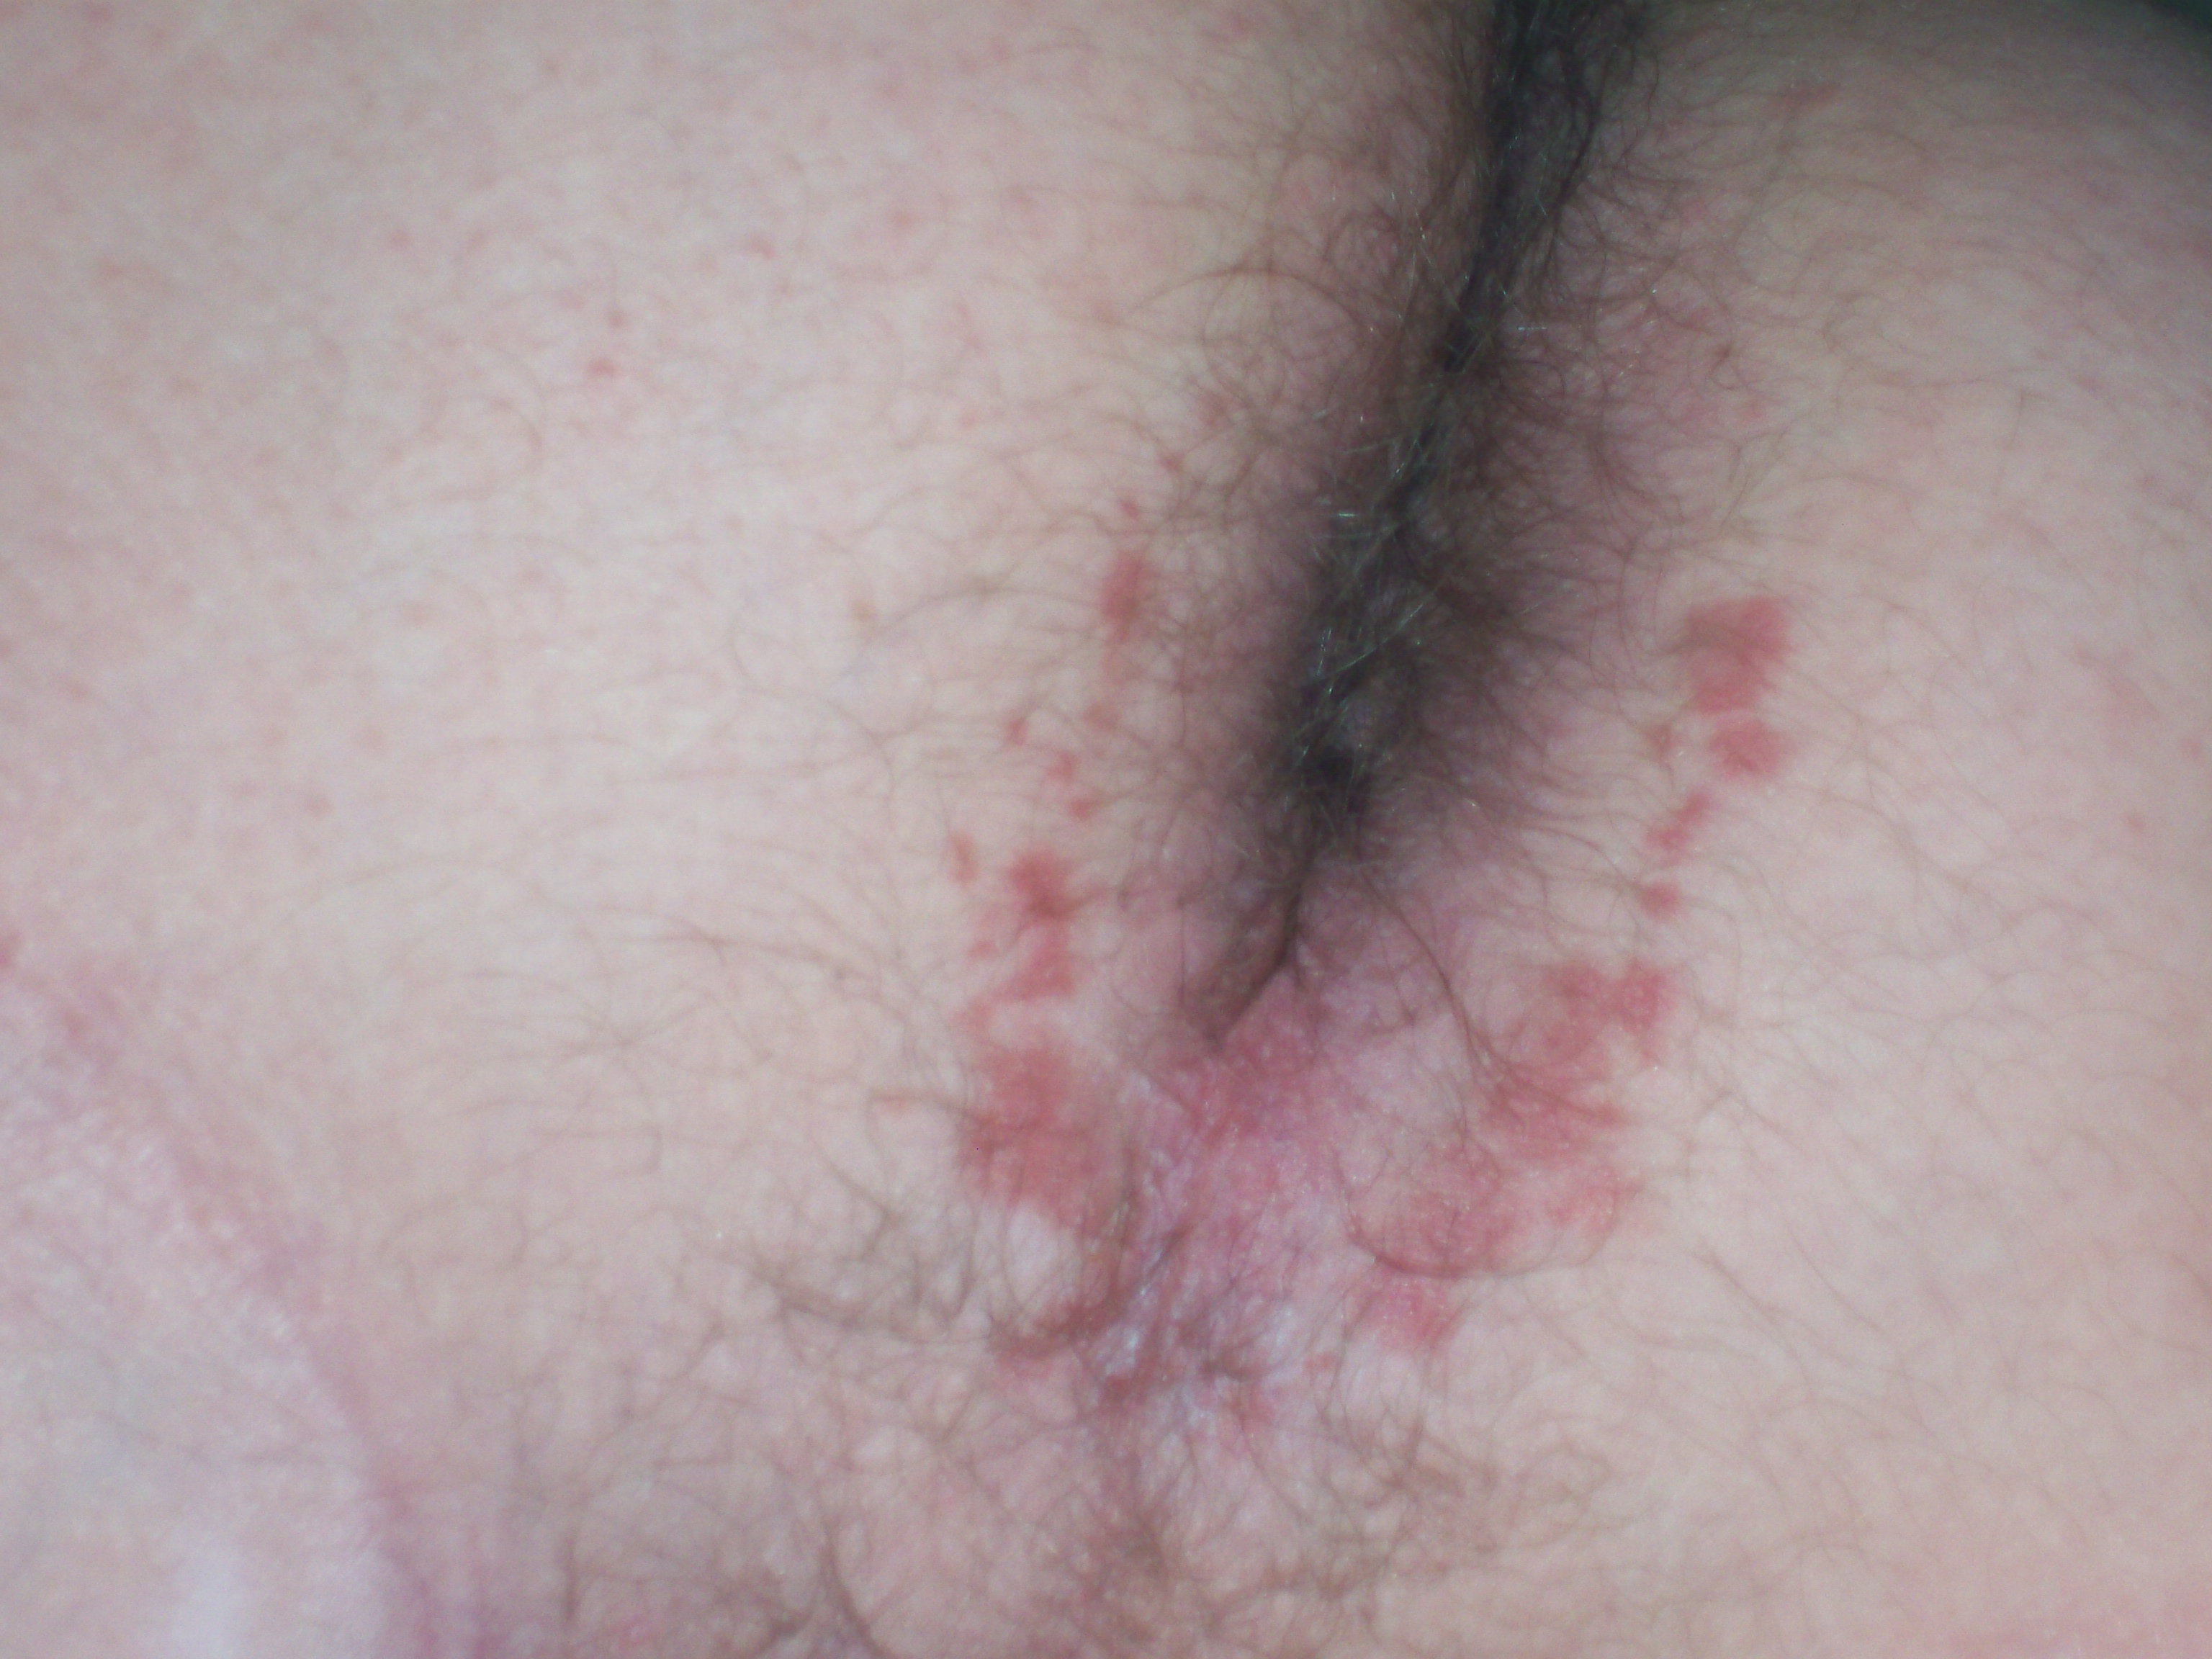 Ultimate redness around the area of anus